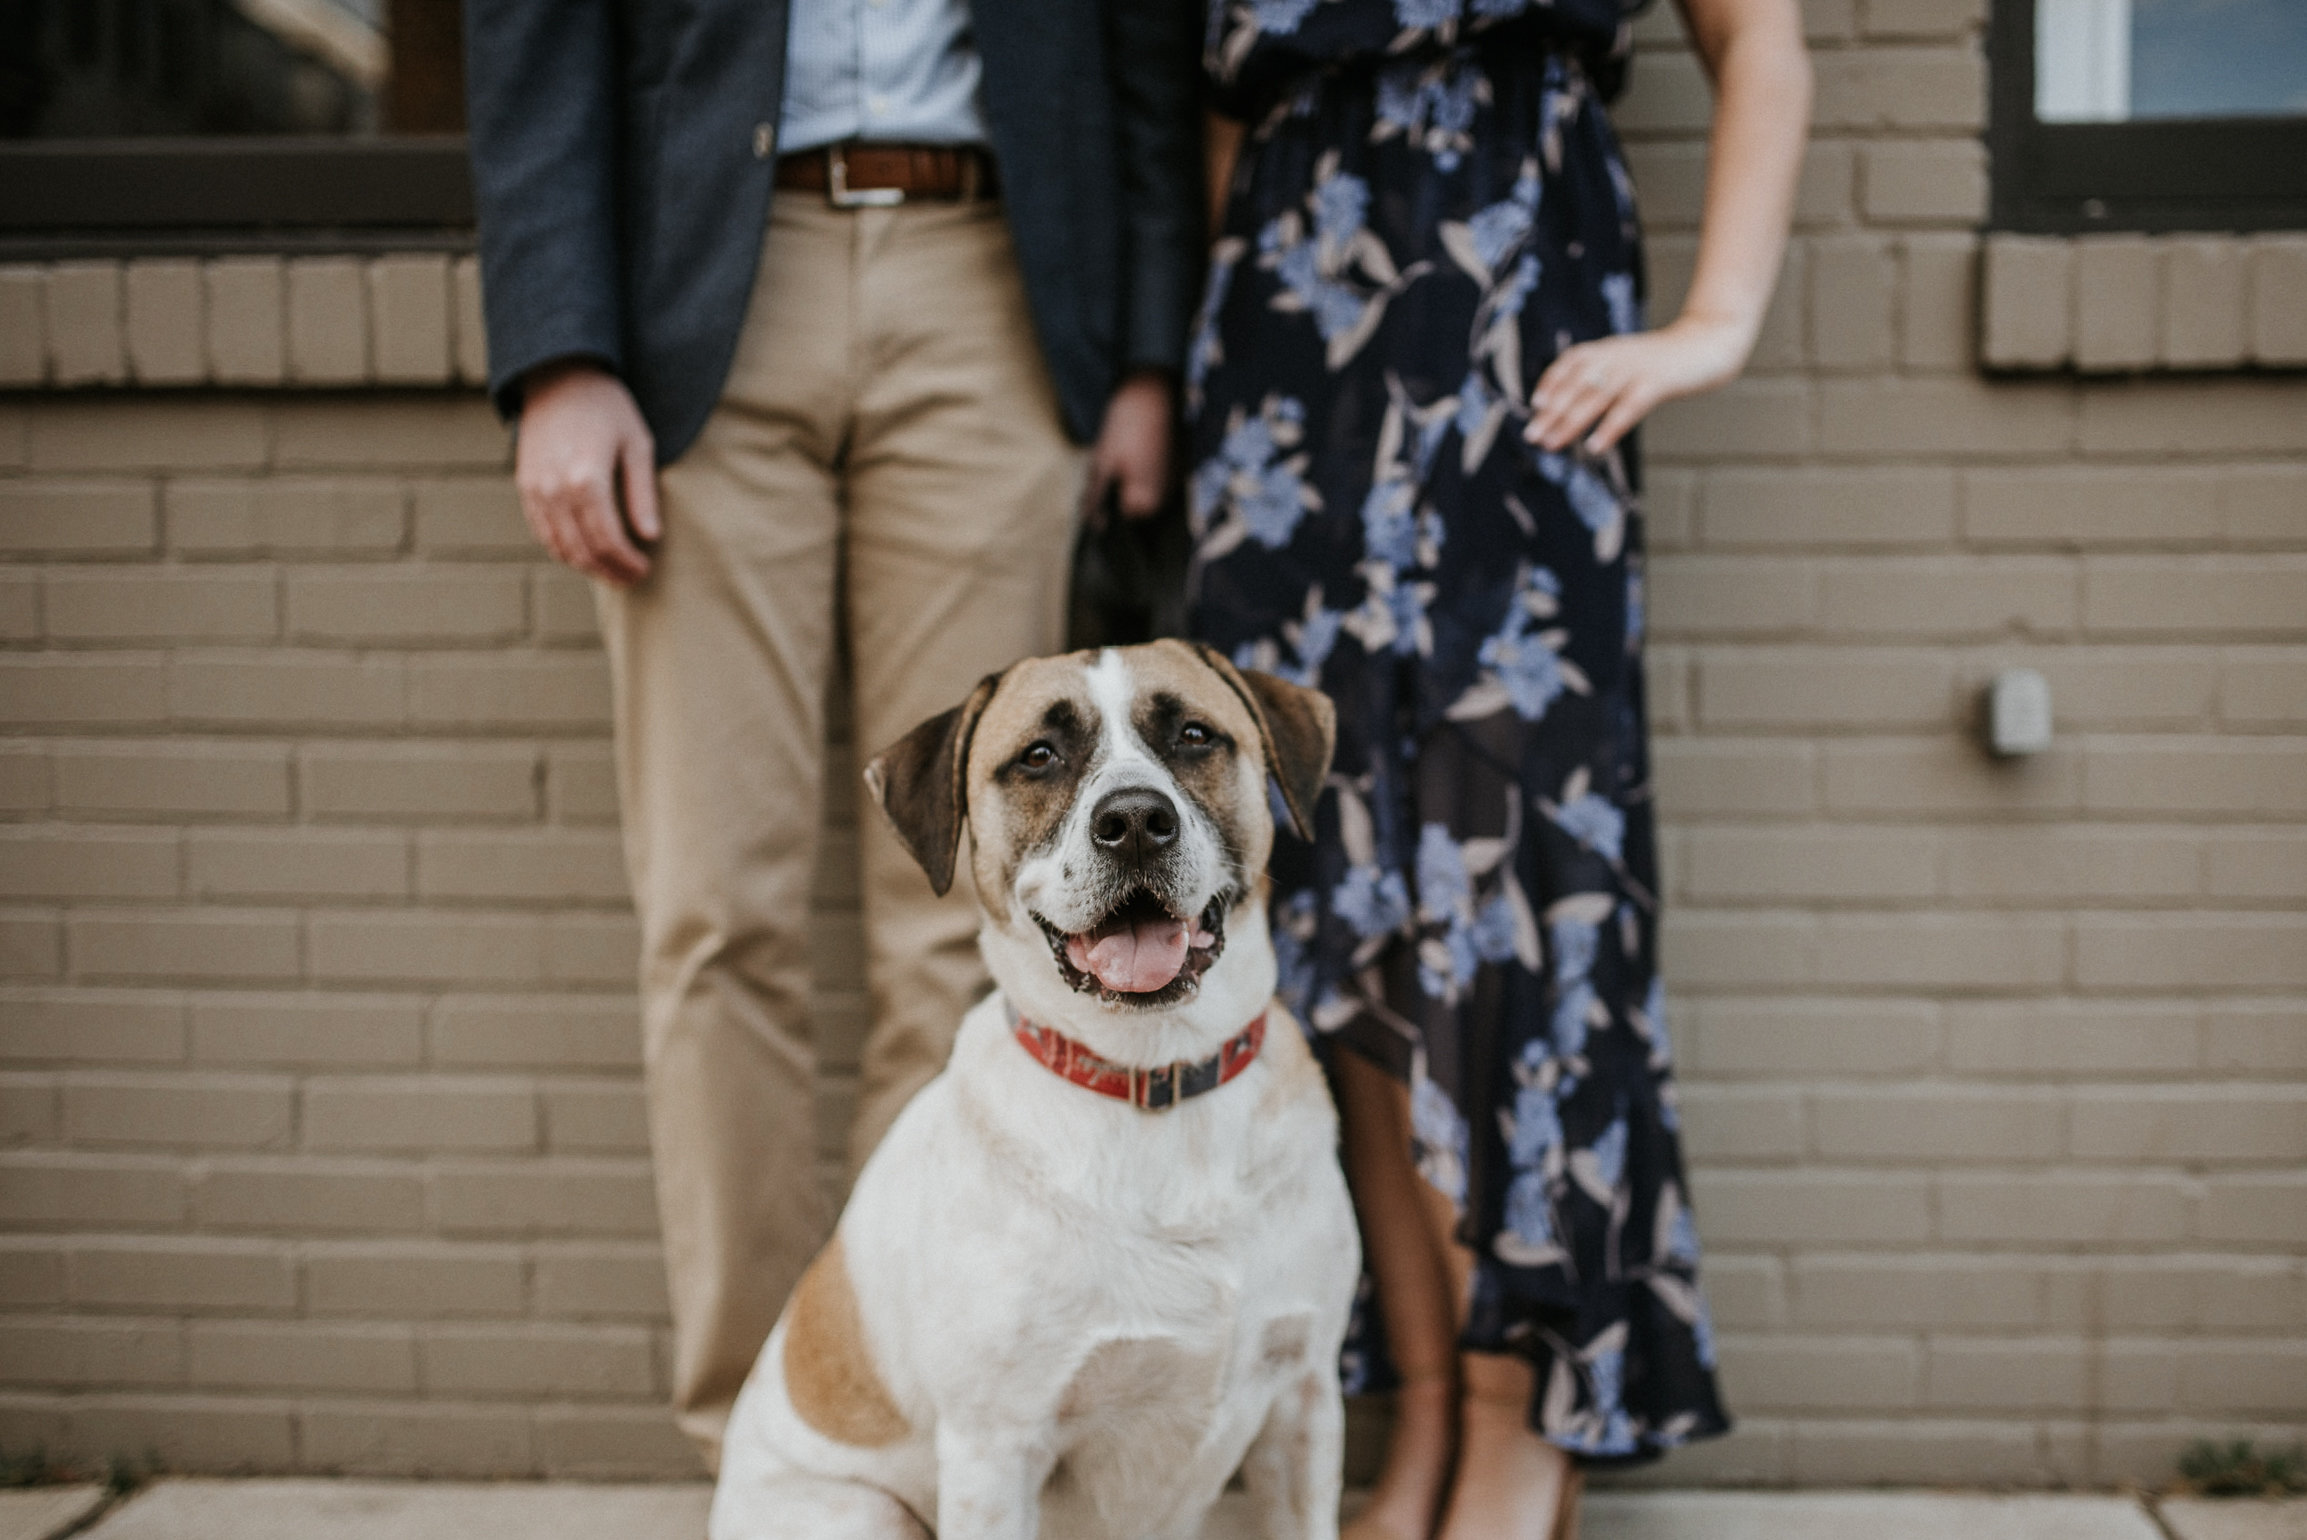 Dog standing in front of owners